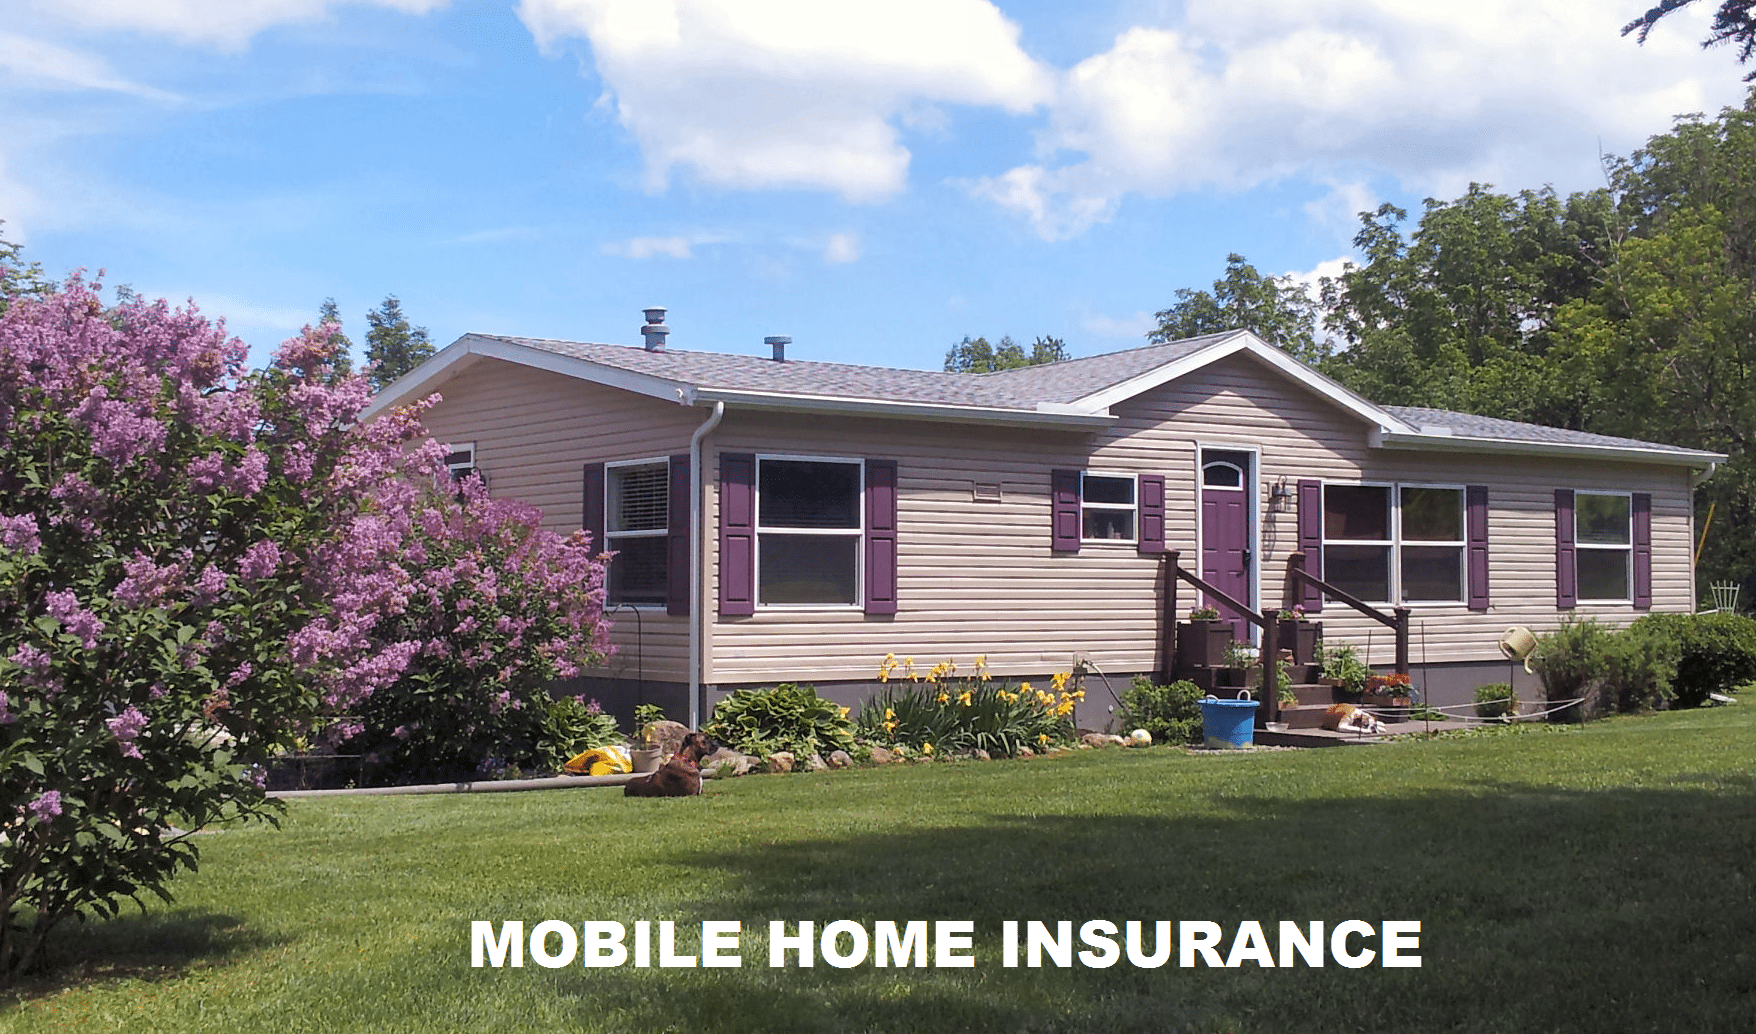 Mobile Home Flood Insurance